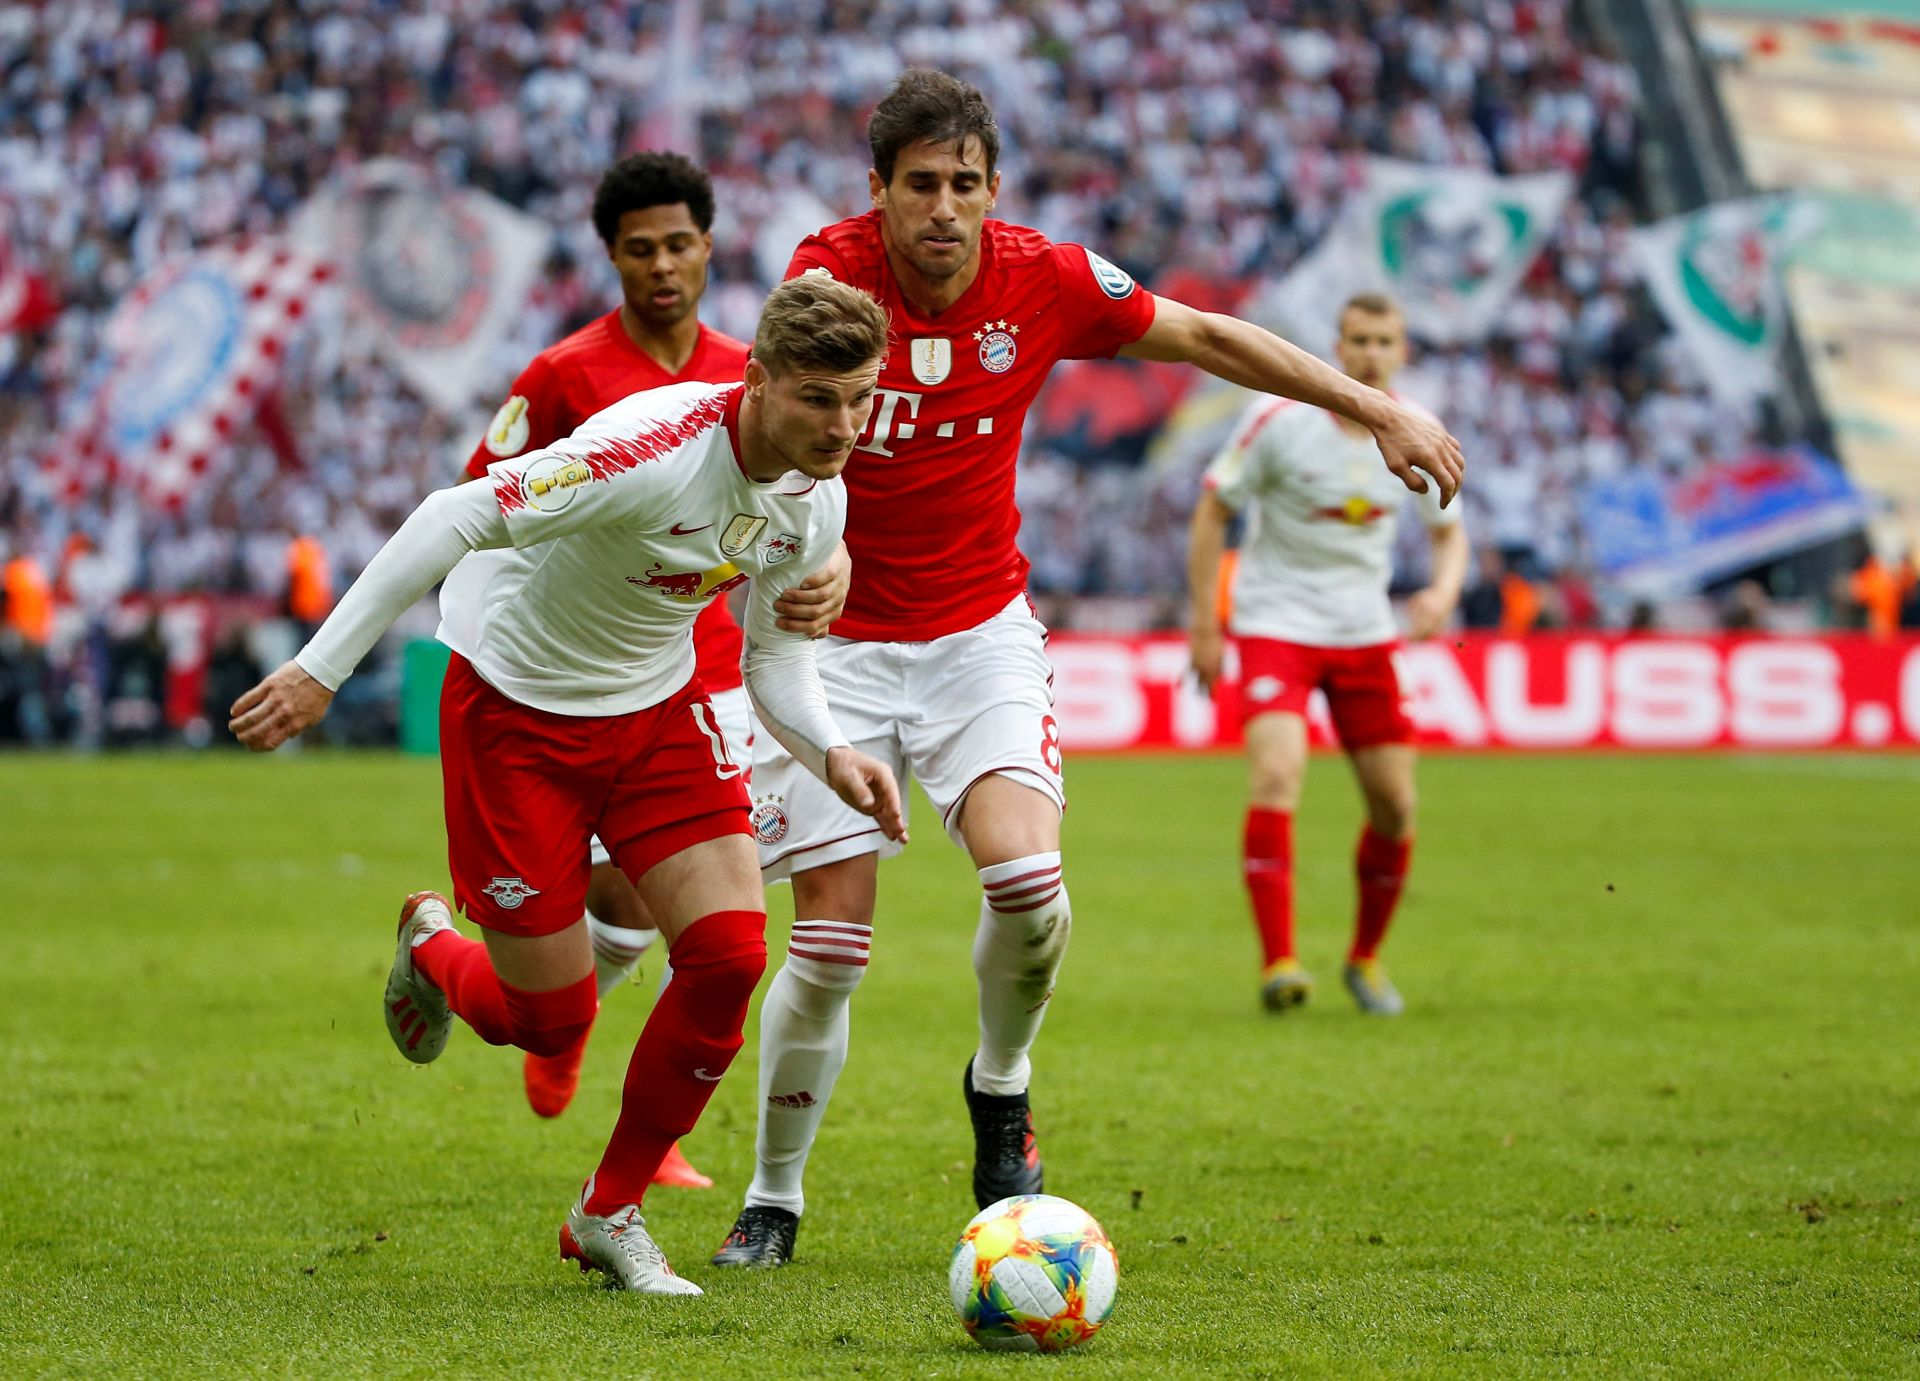 BERLIN, GERMANY - MAY 25 : Timo Werner (L) of Leipzig in action against Martinez (R) during the German DFB Cup final soccer match between FC Bayern Munich and RB Leipzig at the Olympic Stadium in Berlin, Germany on 24 May 2019. Abdulhamid Hosbas / Anadolu Agency/ABACAPRESS.COM PILKA NOZNA PUCHAR NIEMIEC FINAL FOT. ABACA/NEWSPIX.PL POLAND ONLY! --- Newspix.pl *** Local Caption *** www.newspix.pl mail us: info@newspix.pl call us: 0048 022 23 22 222 --- Polish Picture Agency by Ringier Axel Springer Poland